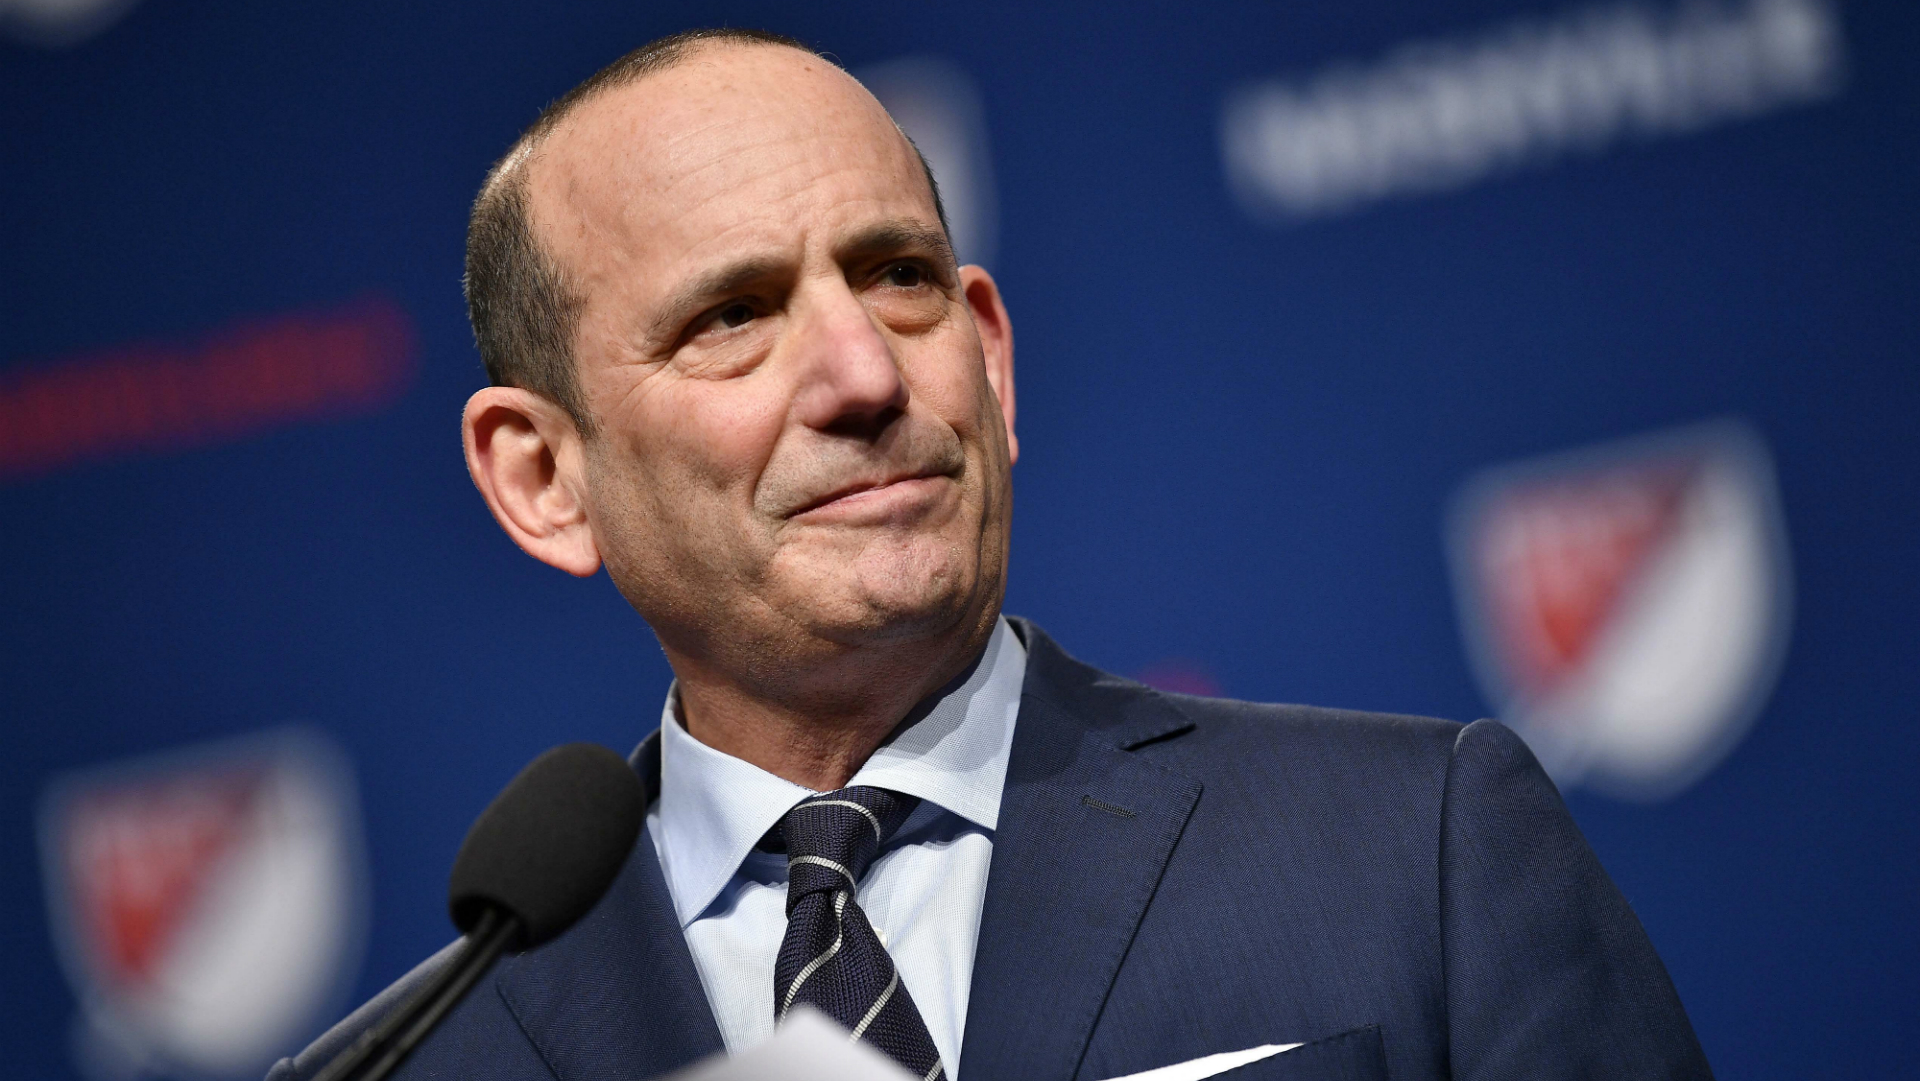 'I don't think we'd ever do that' – MLS commissioner Garber shoots down Liga MX merger question